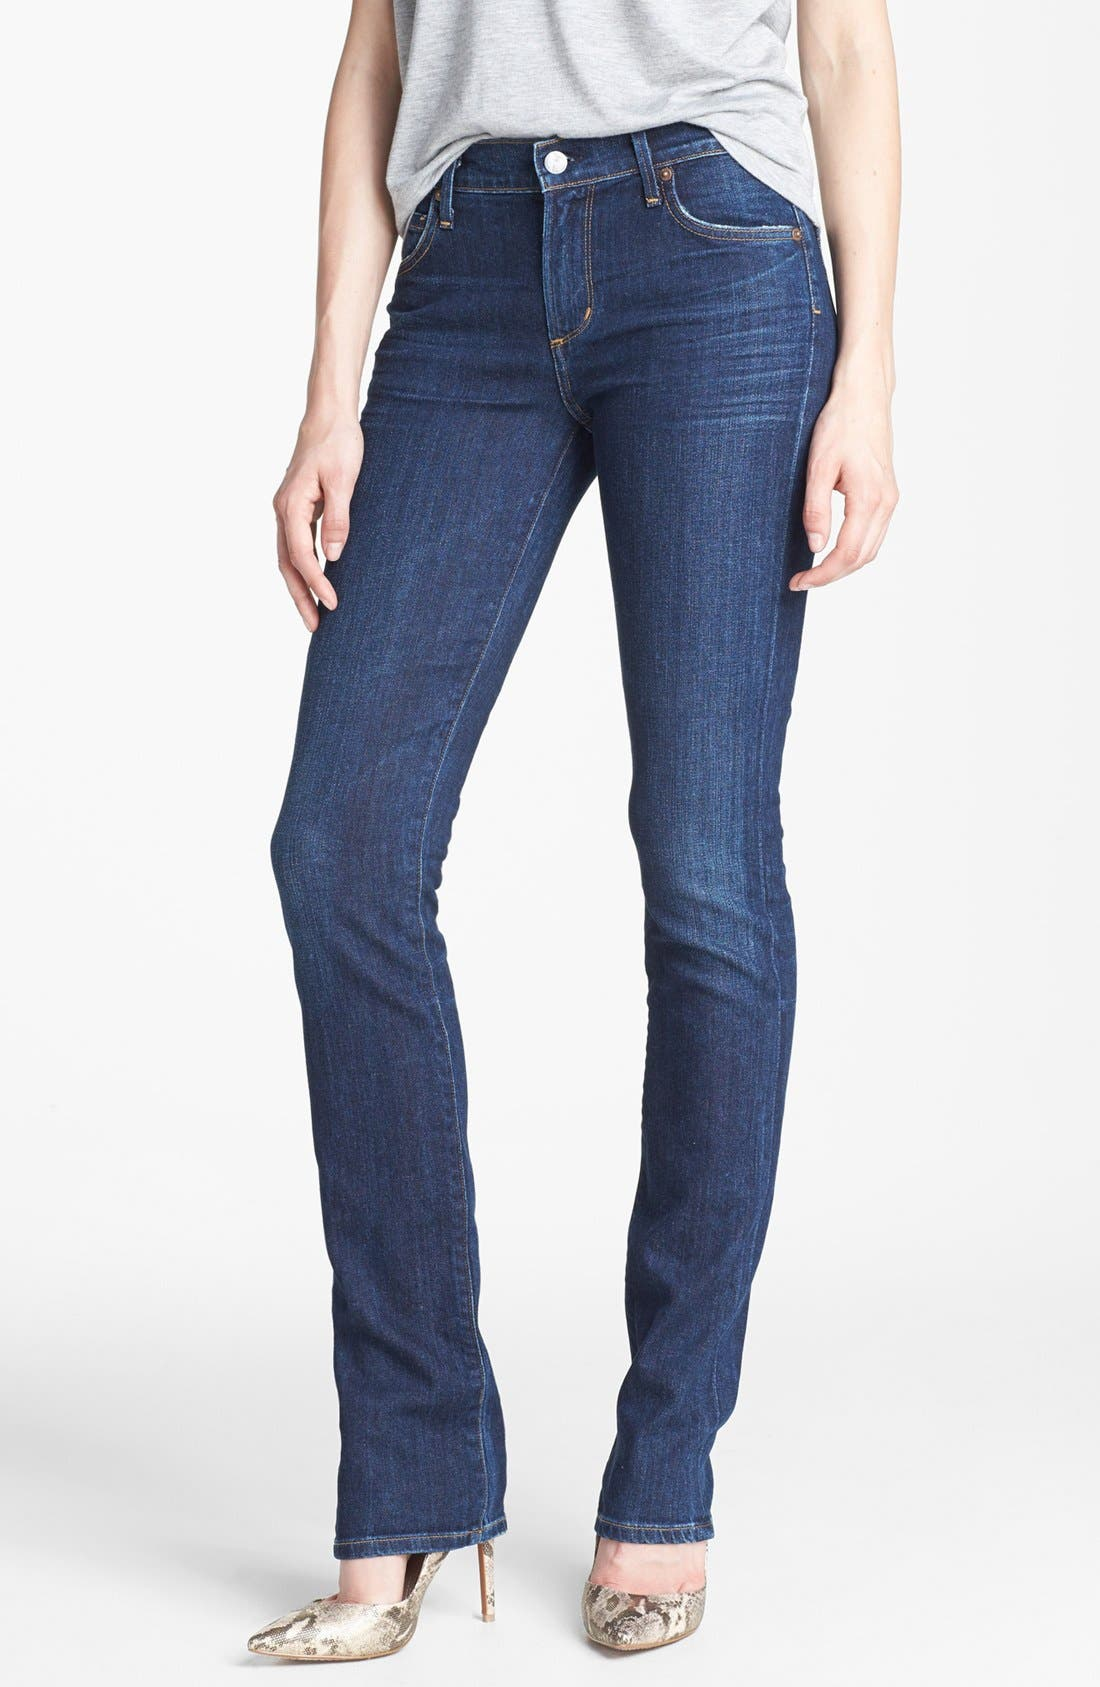 Alternate Image 1 Selected - Citizens of Humanity 'Elson' Mid Rise Straight Leg Jeans (Element)